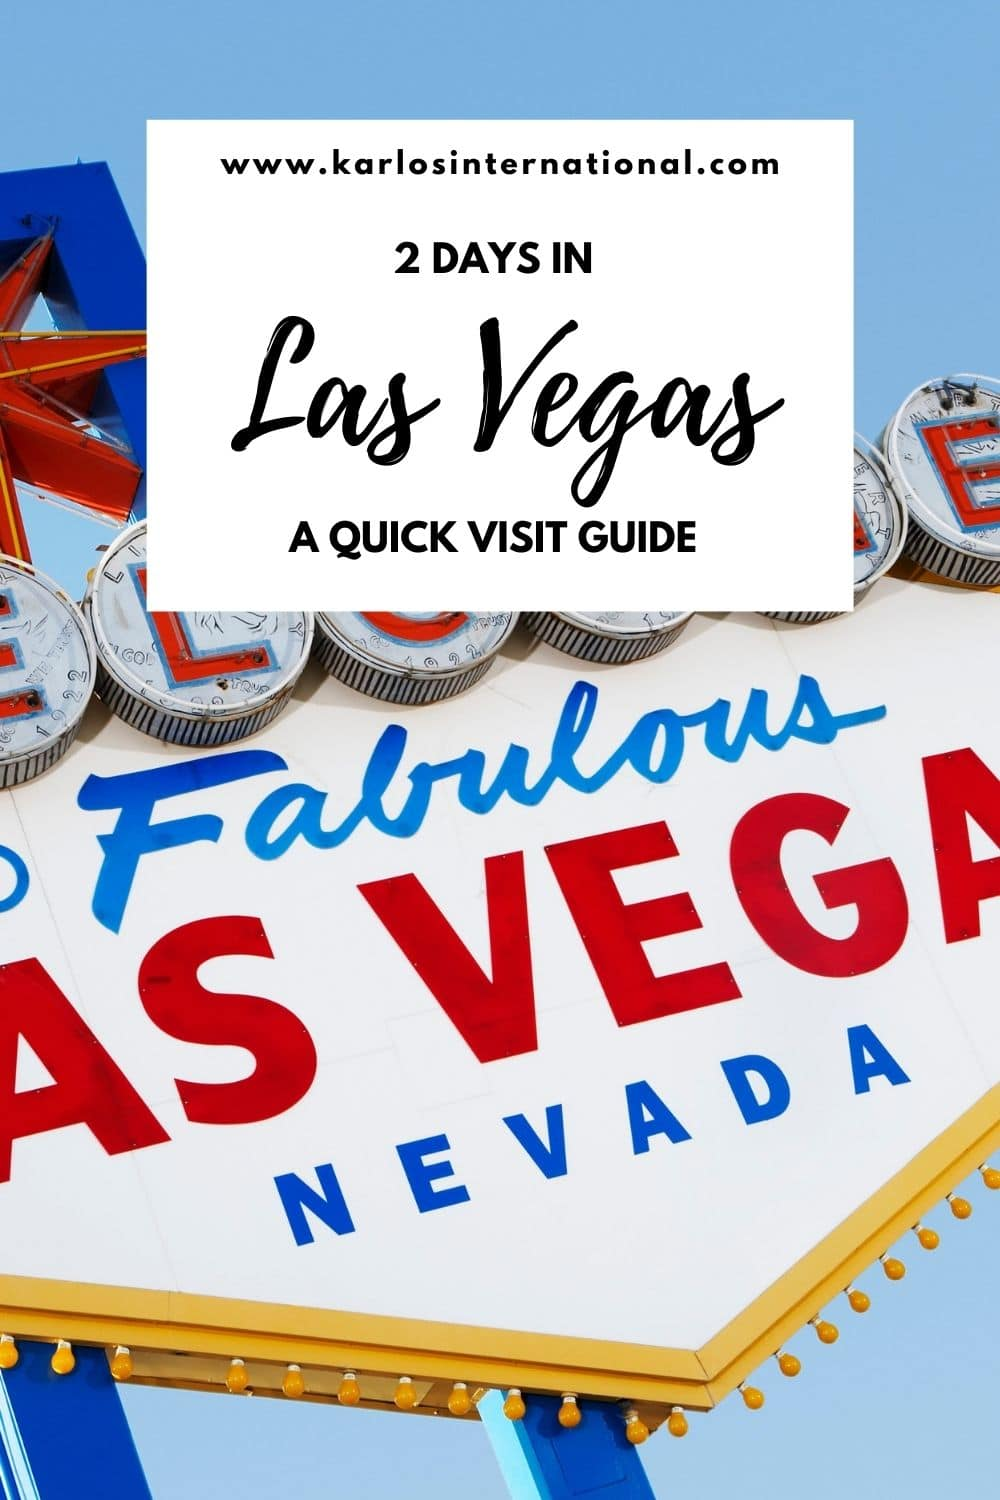 2 Days in Las Vegas - A Quick Visit Guide by Karlos International - Pinterest Pin